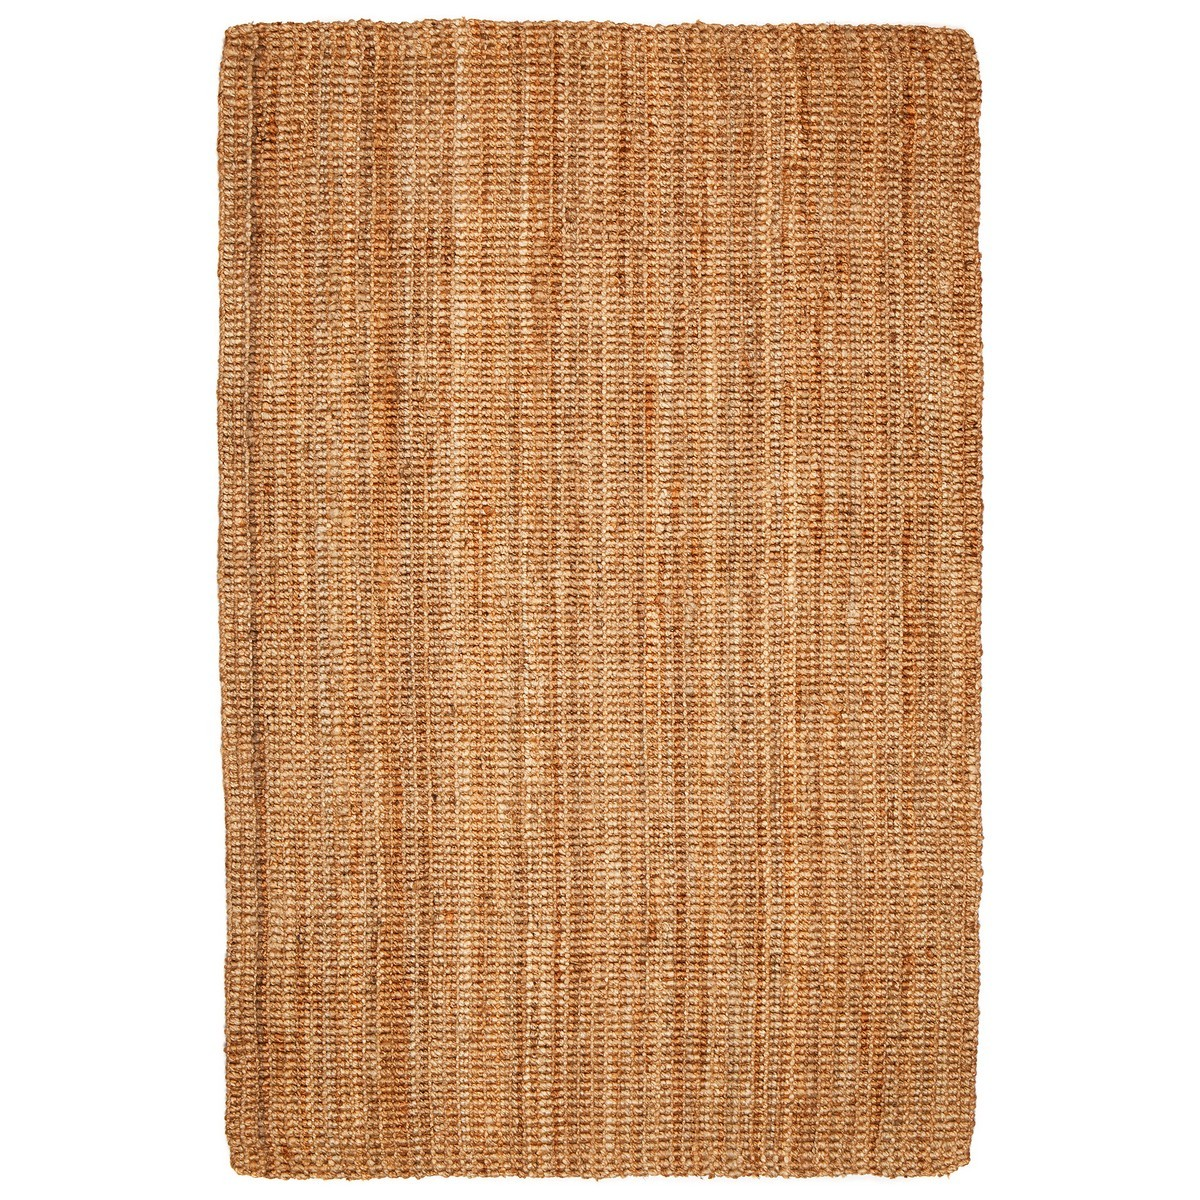 Estate Hand Braided Jute Rug, 240x300cm